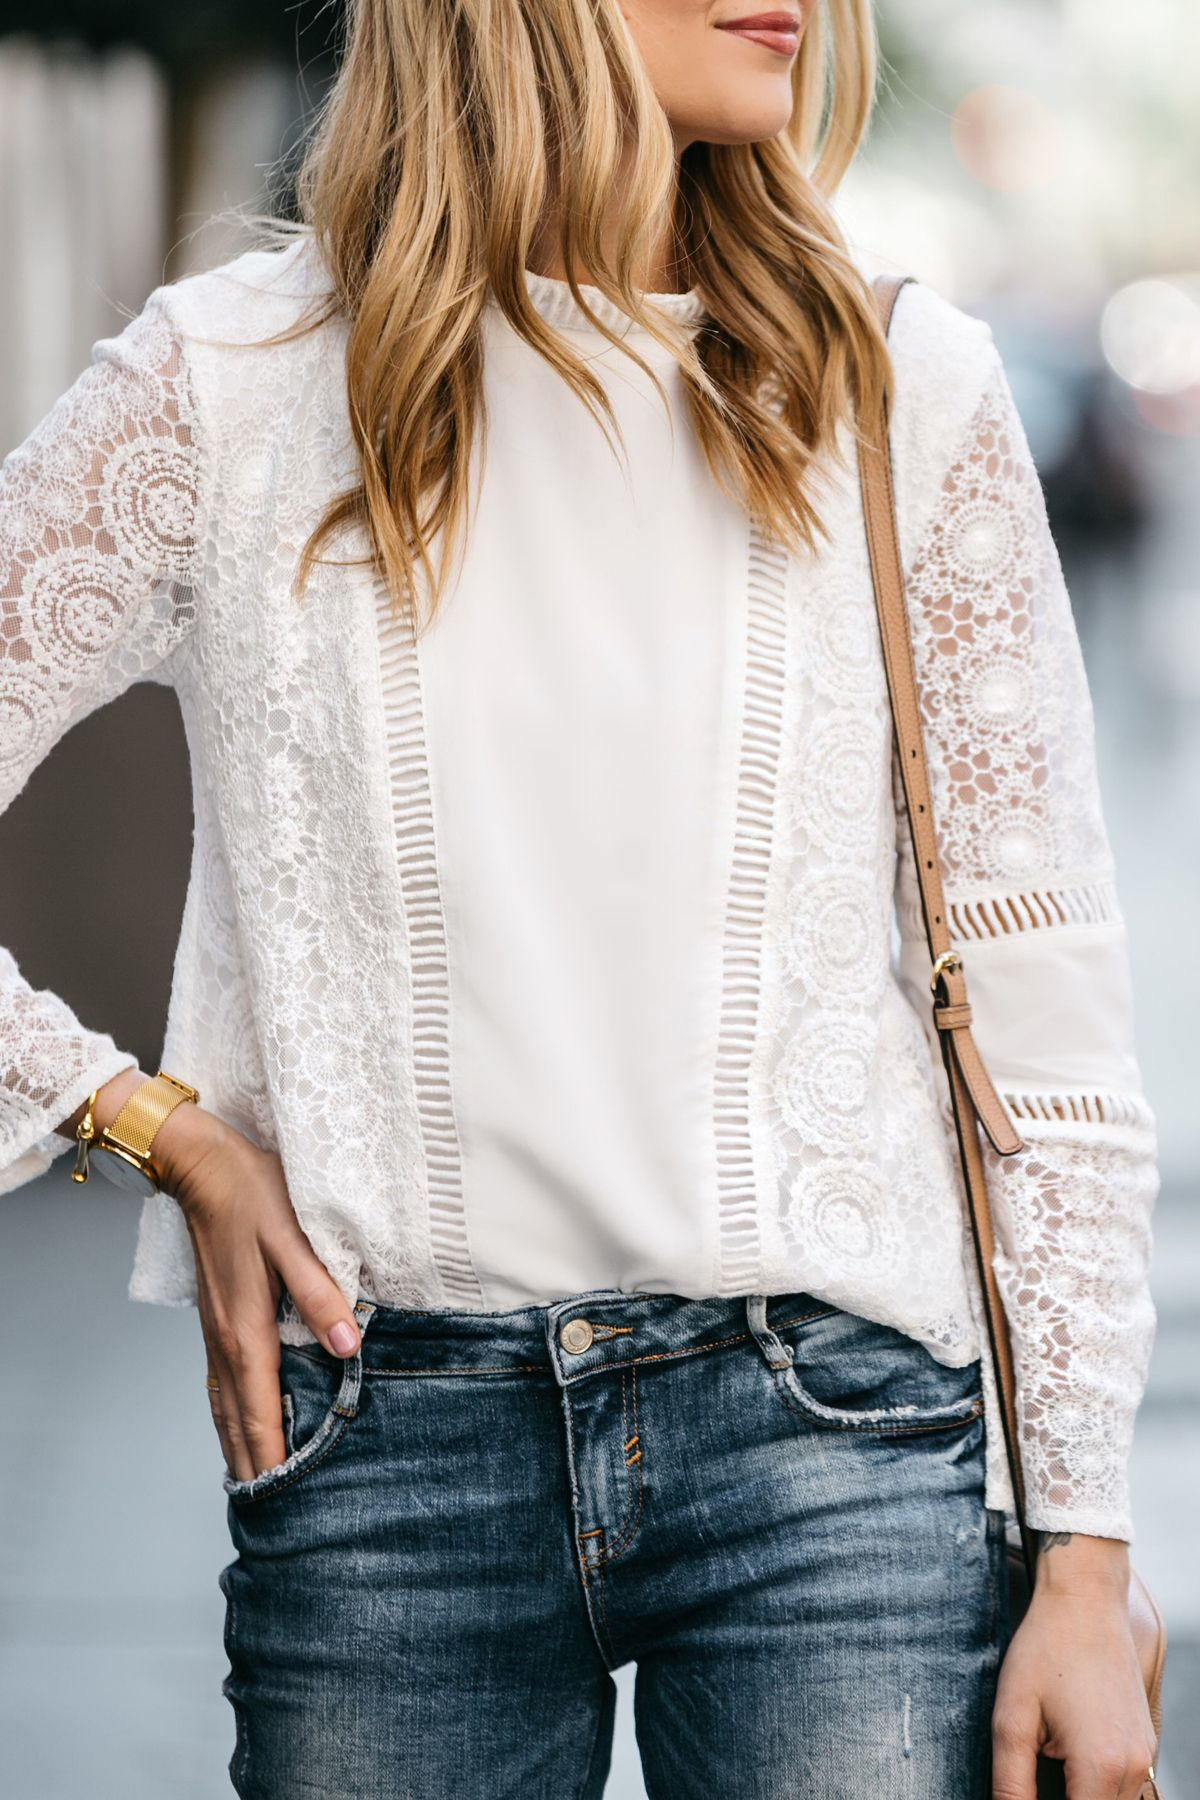 d66572b279379f Fashion Jackson, Dallas Blogger, Fashion Blogger, Street Style, Mink Pink  White Lace Top, Zara Denim Ripped Skinny Jeans, Gucci Soho Disco Handbag